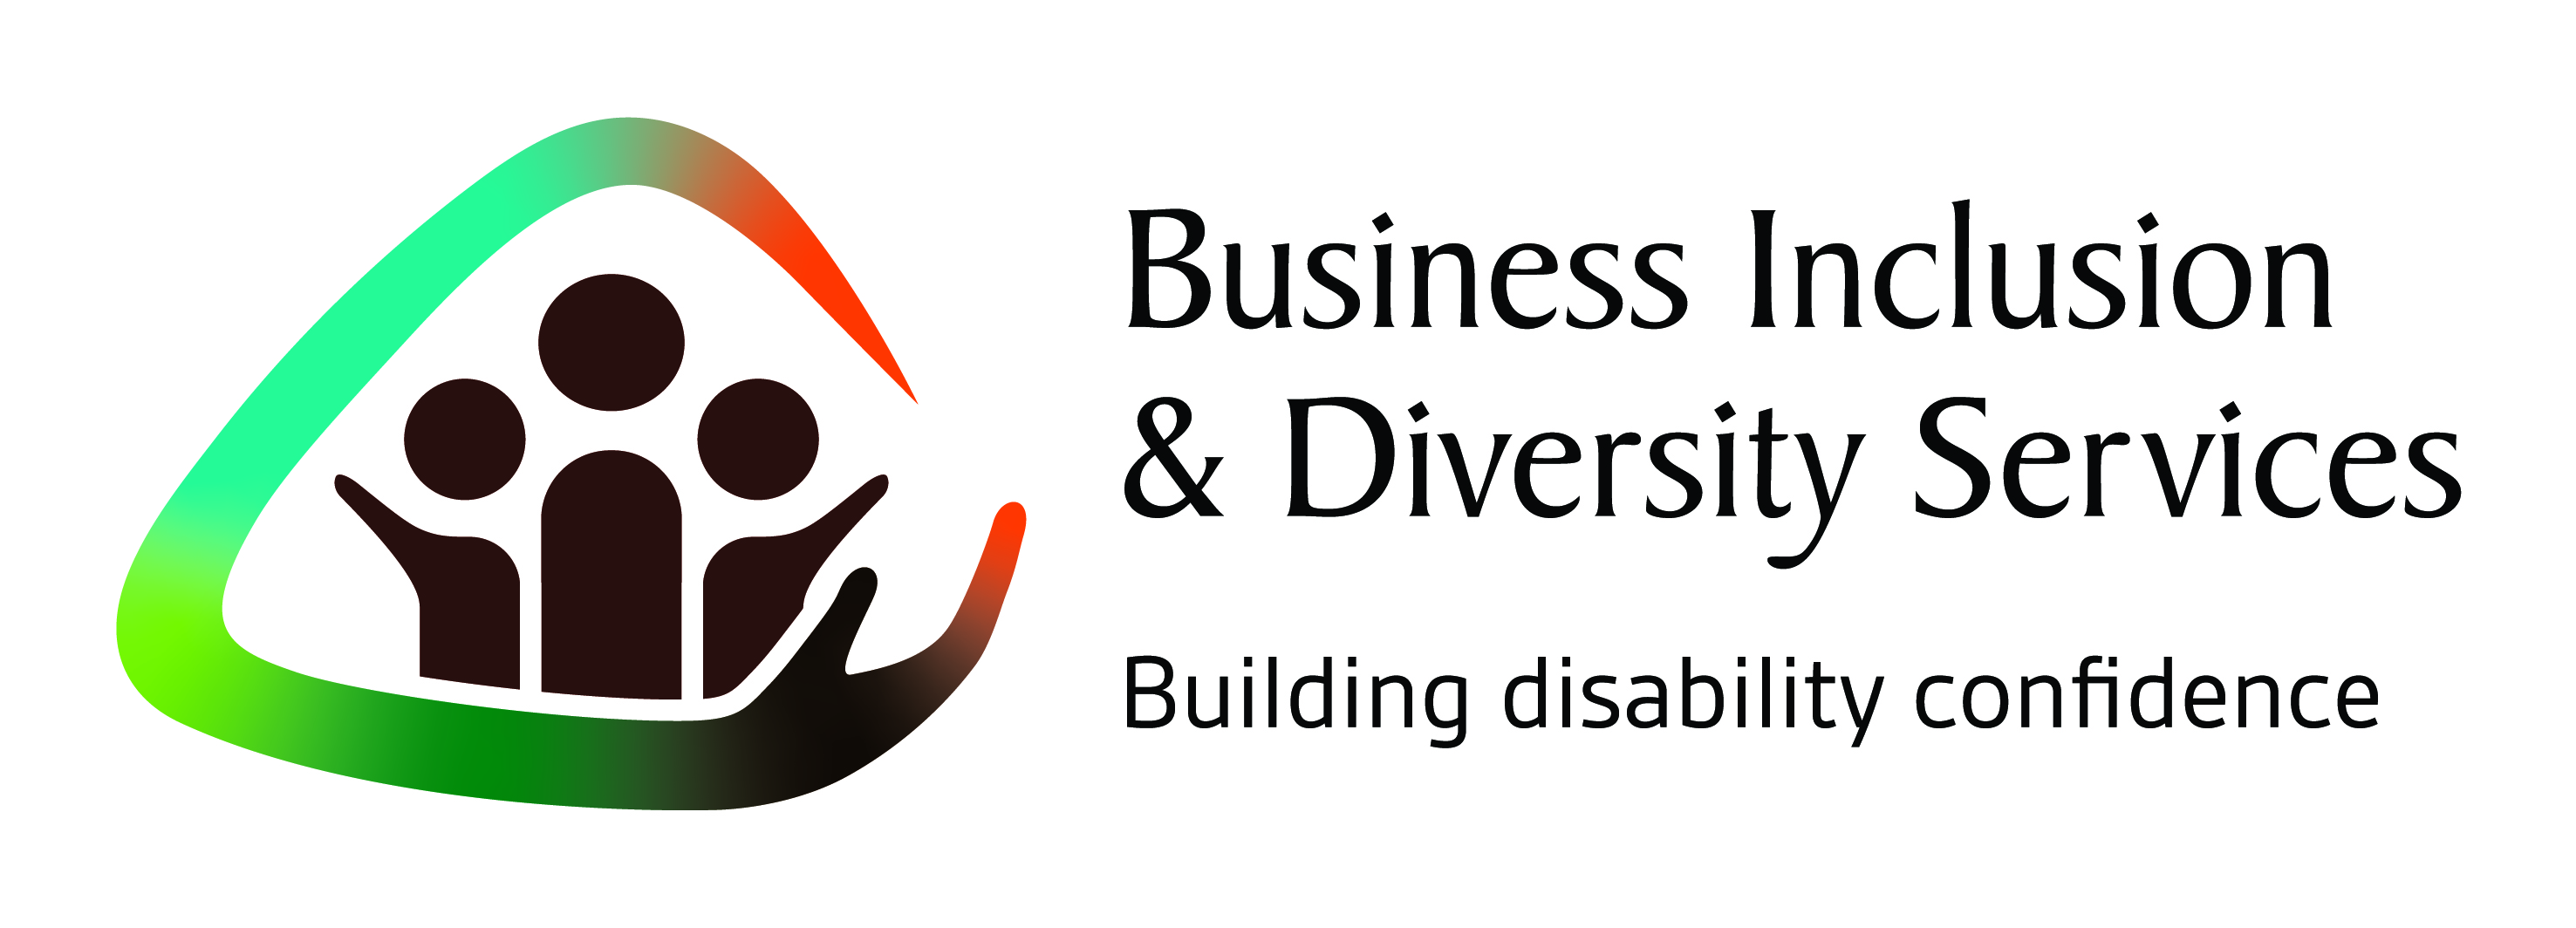 Business Inclusion & Diversity Services Logo